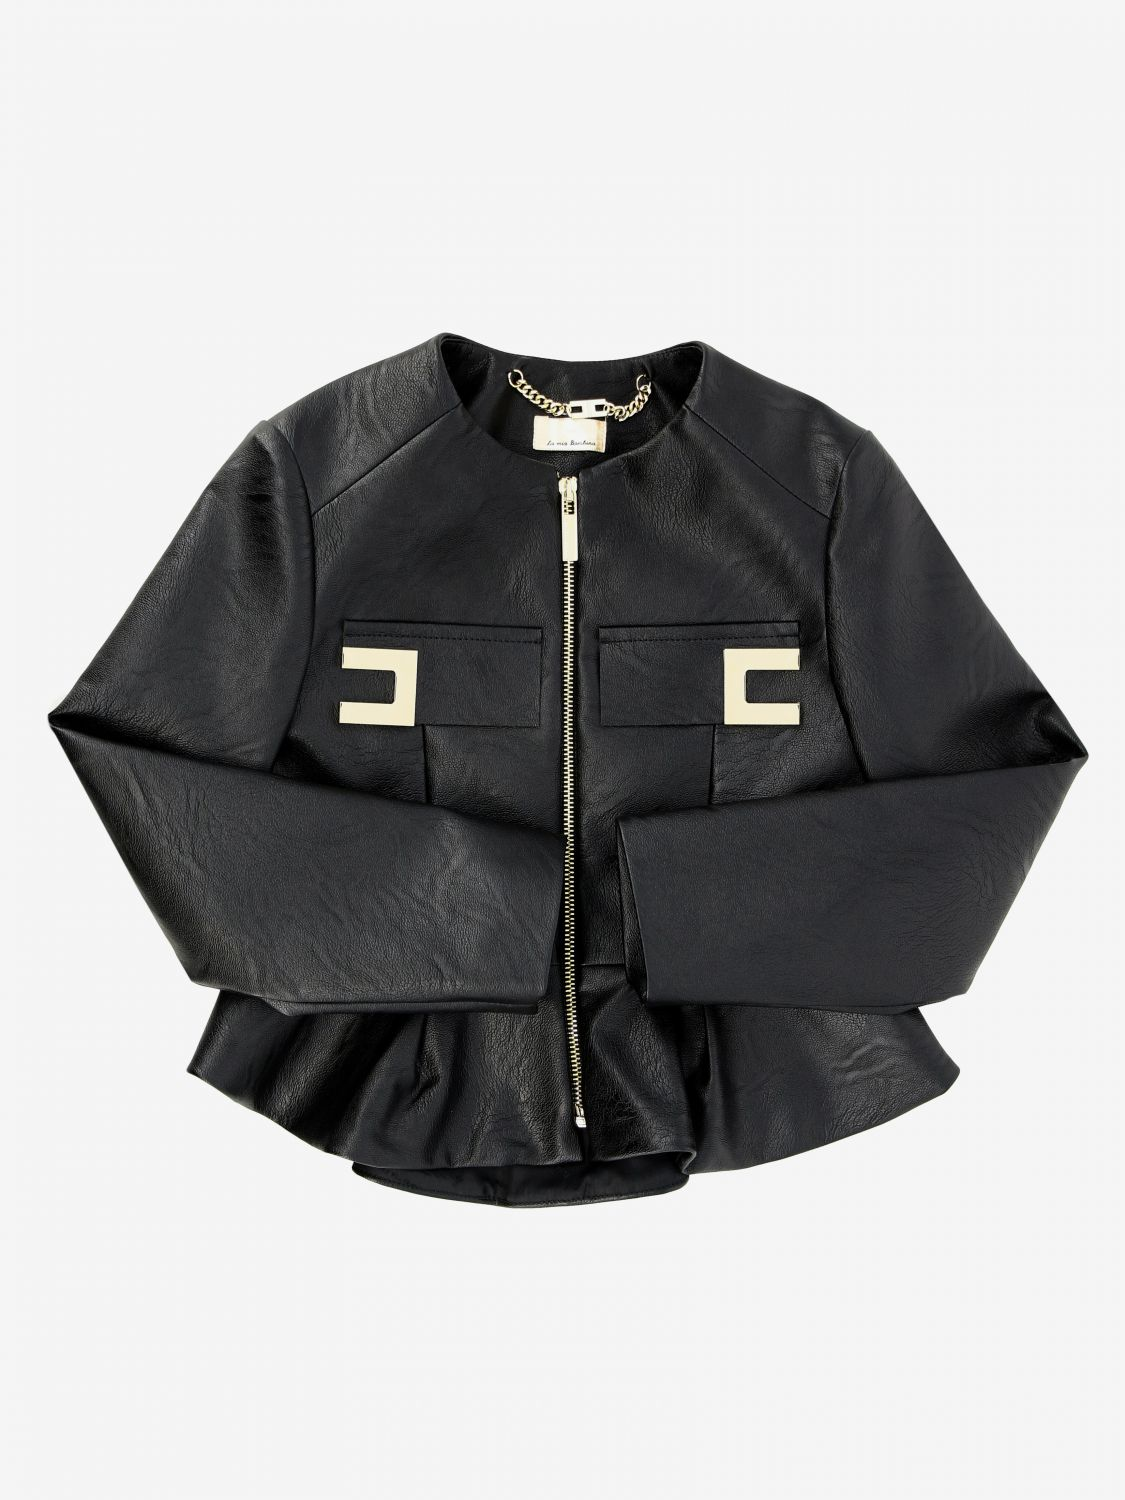 Elisabetta franchi jacket in synthetic leather with logo black 1